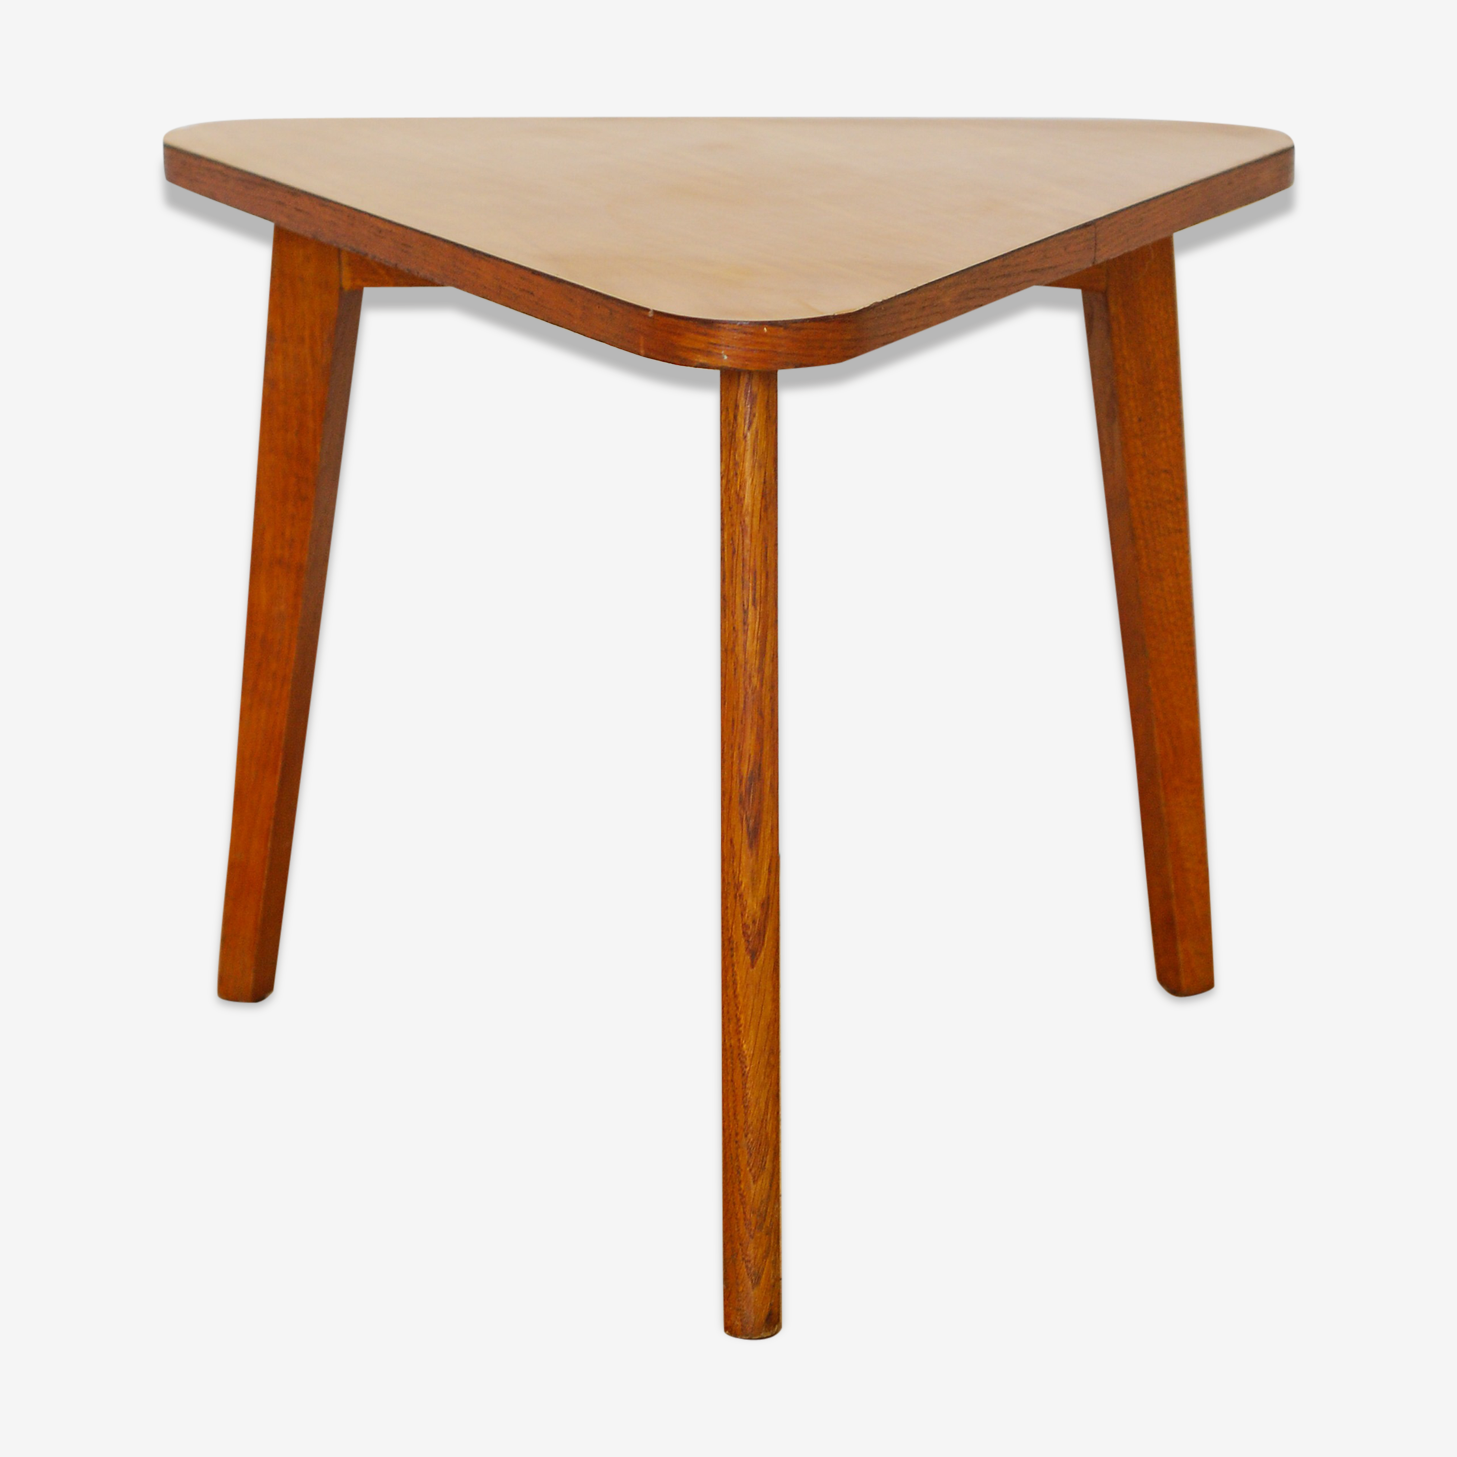 Table basse trinagulaire tripode